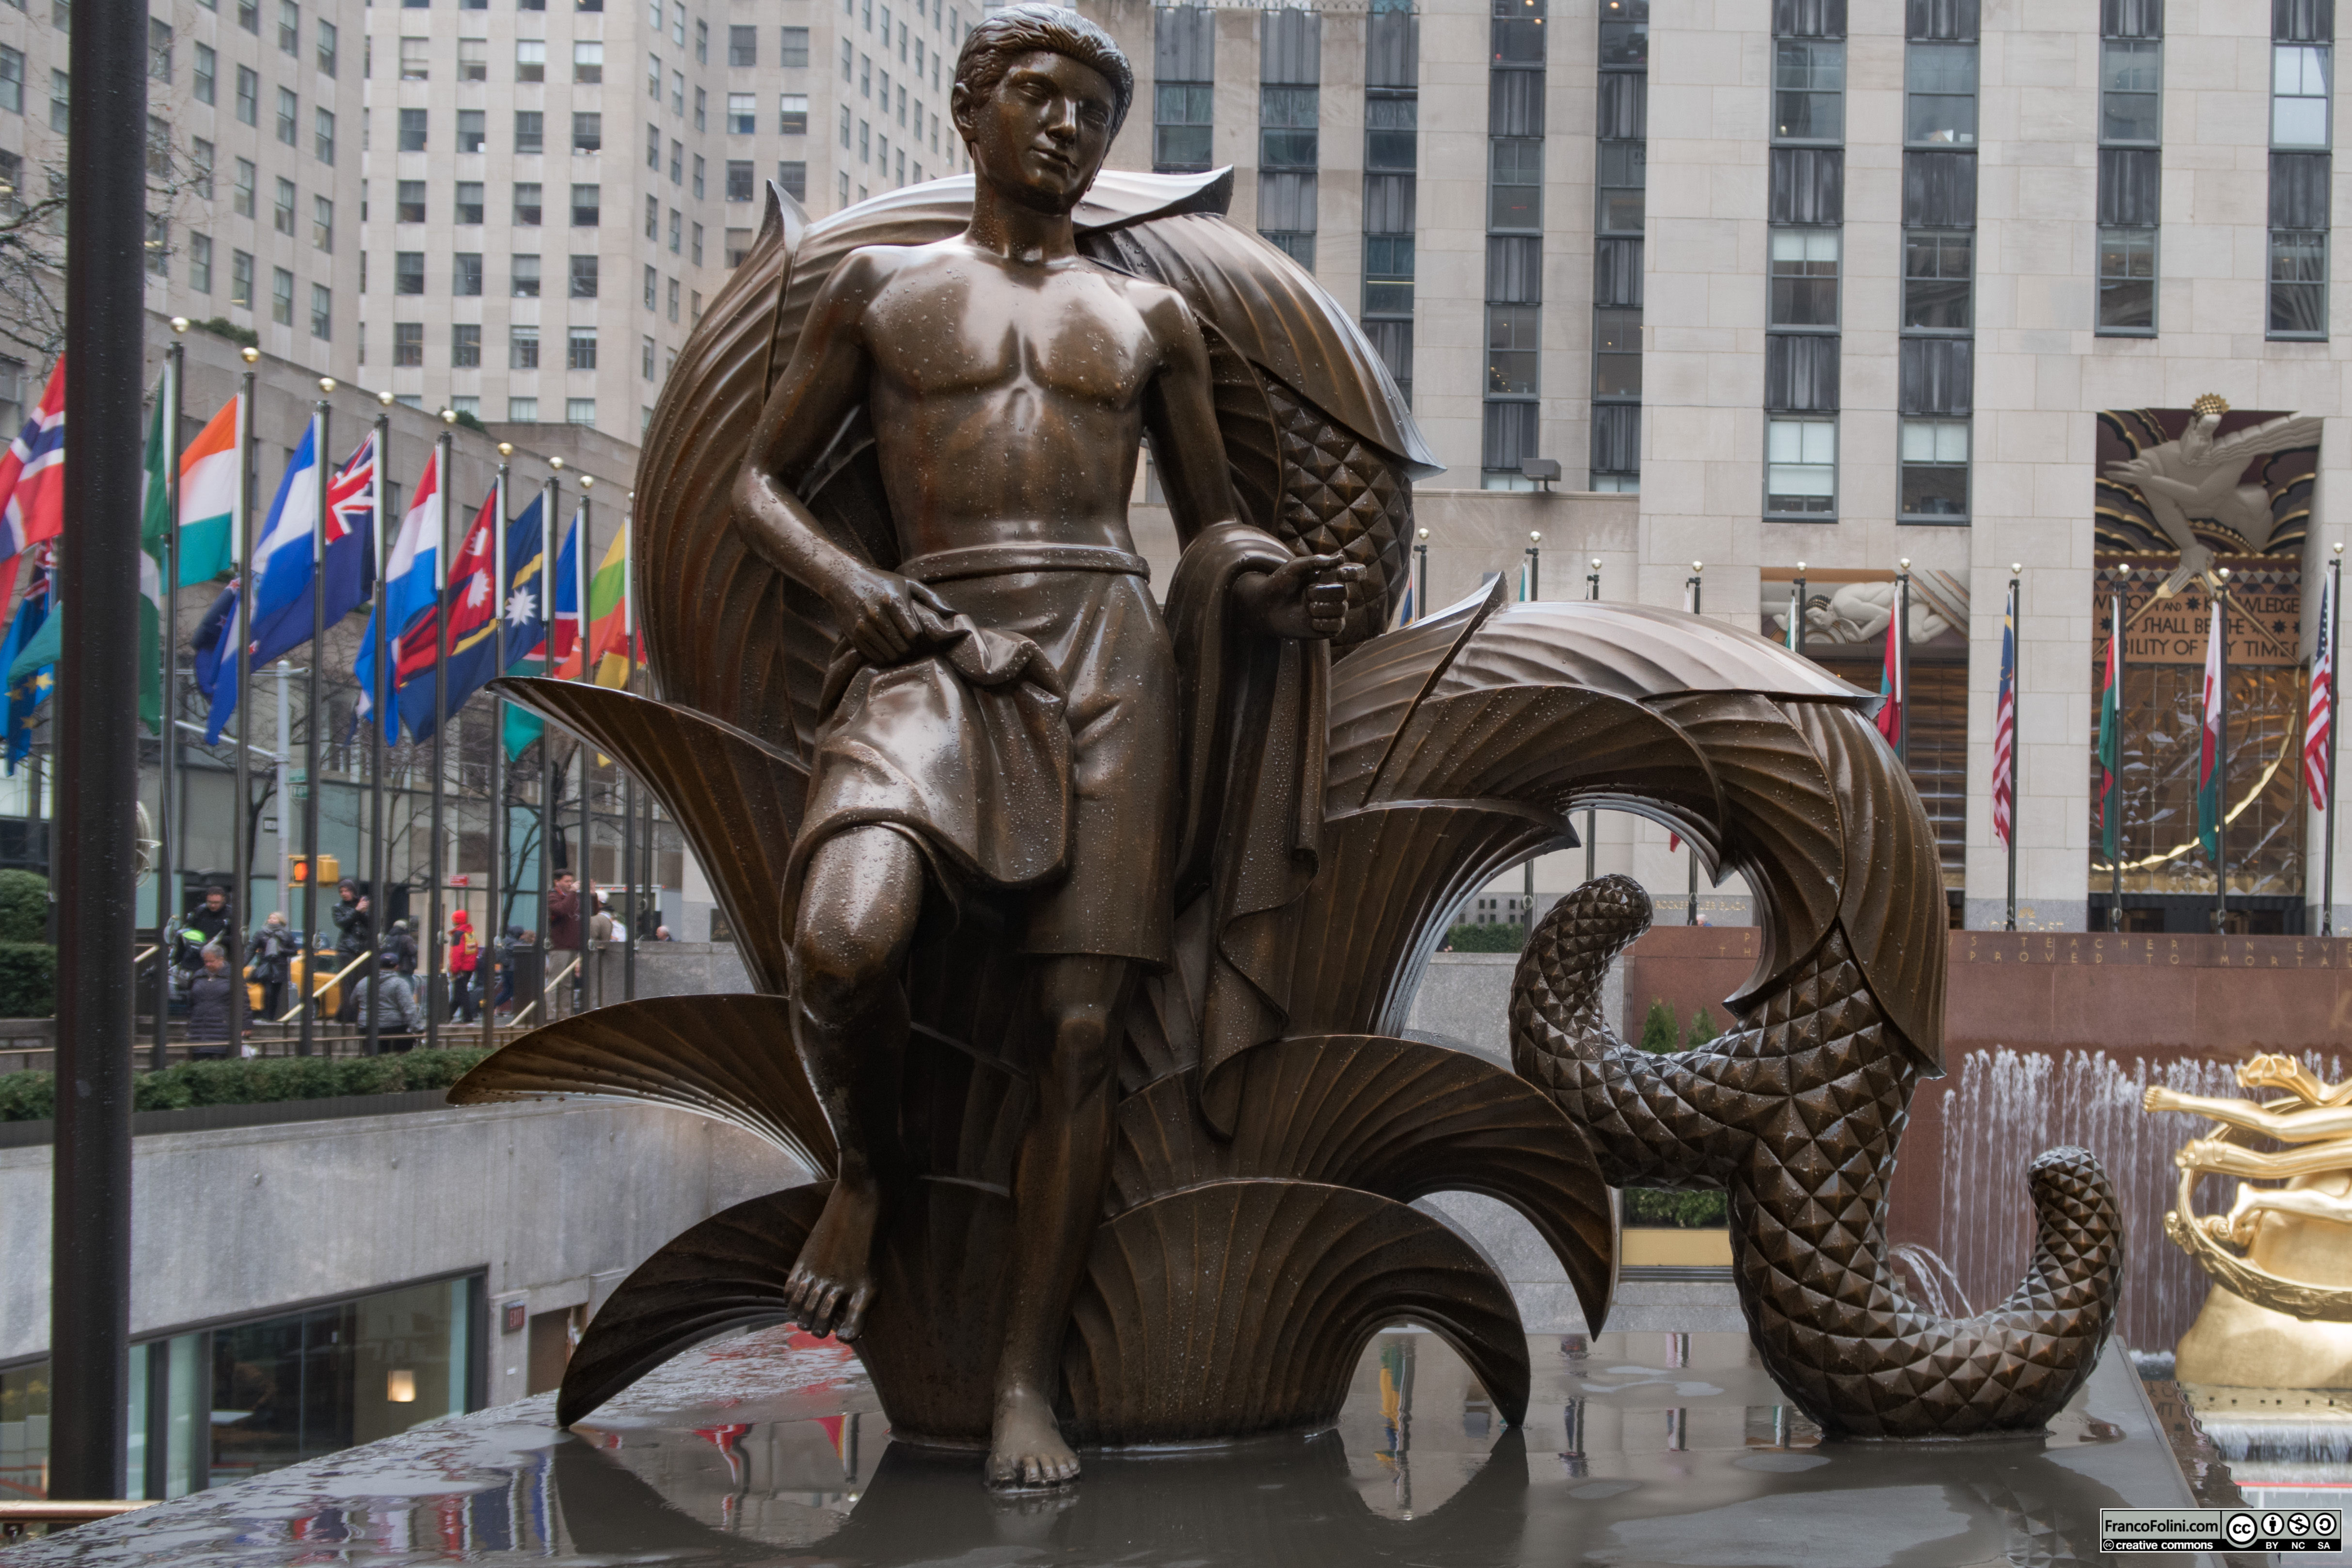 Youth cast bronze statue by Paul Manship (1936), NYC